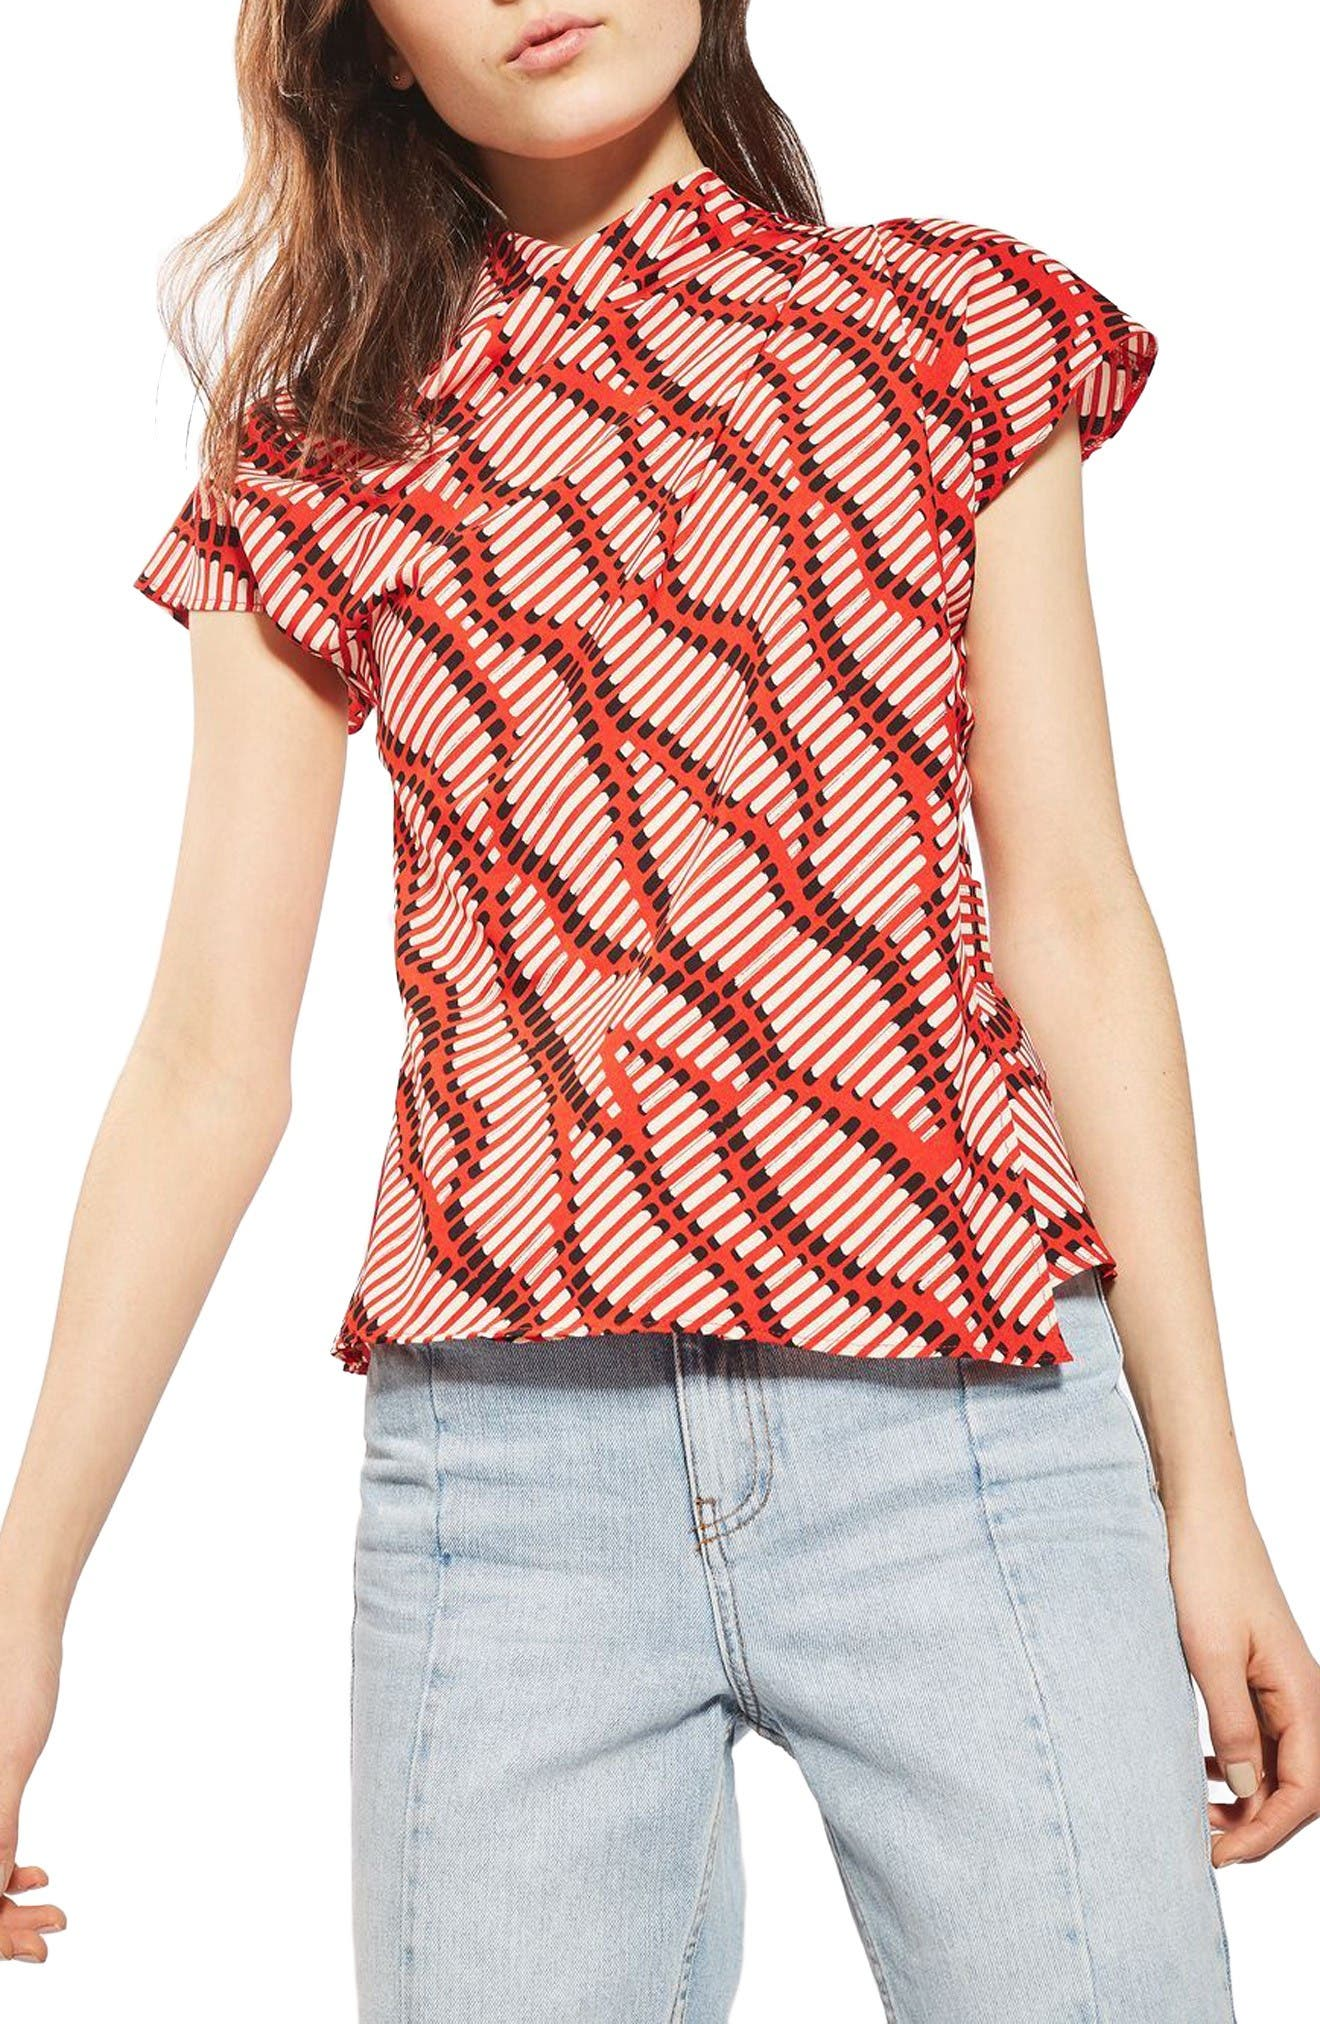 Alternate Image 1 Selected - Topshop Matchstick Print Origami Top